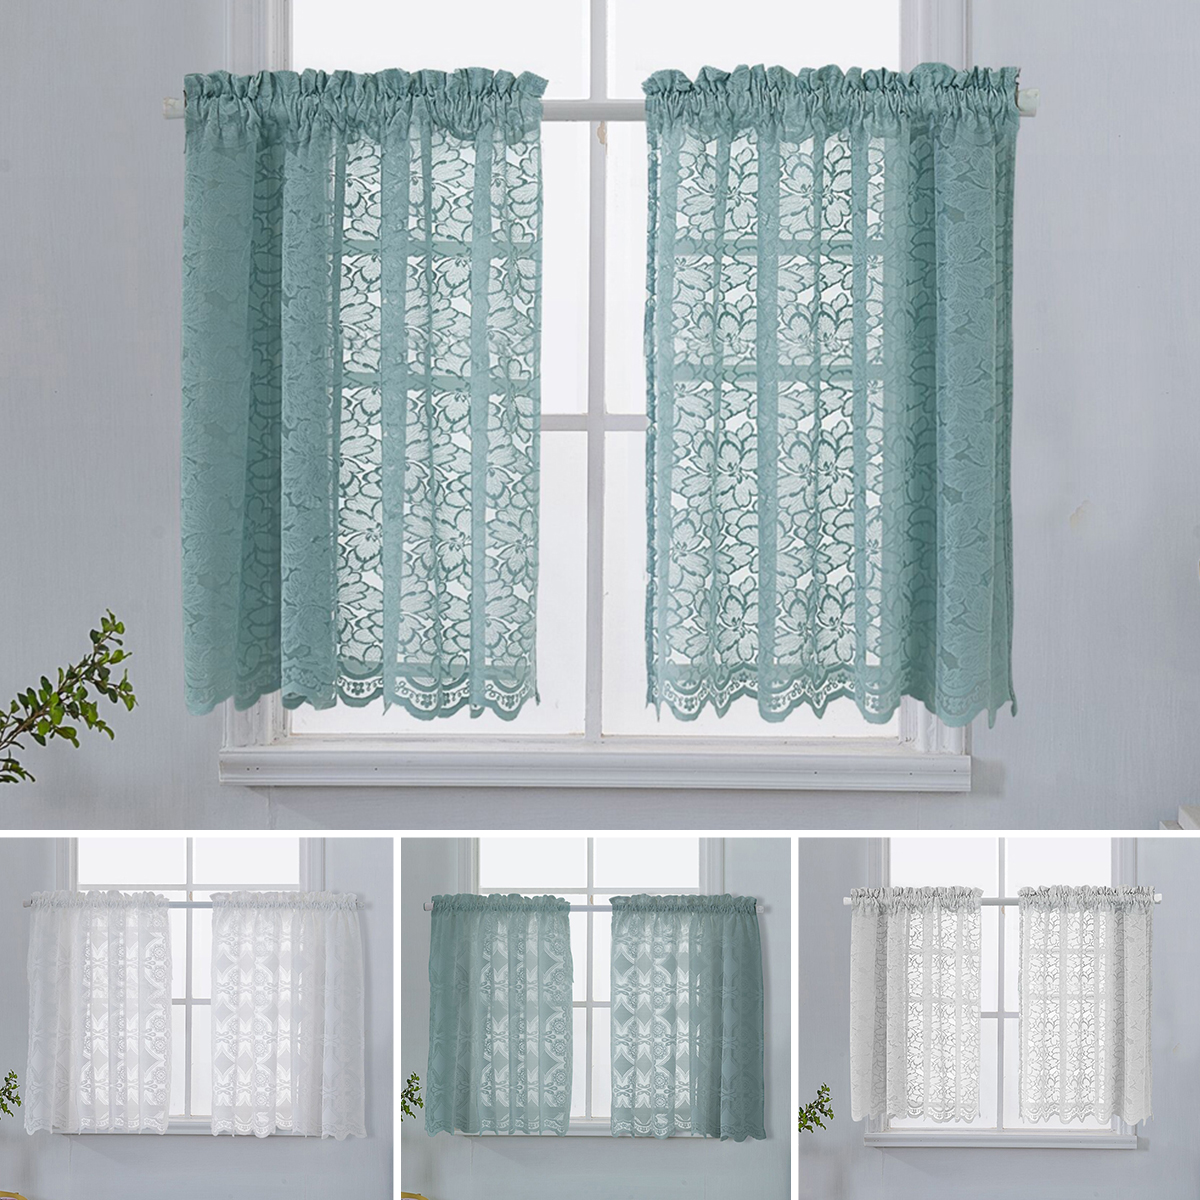 Huis Fruit Colourful Green Voile Cafe Net Curtain Panel Kitchen Curtains Luxclusif Com